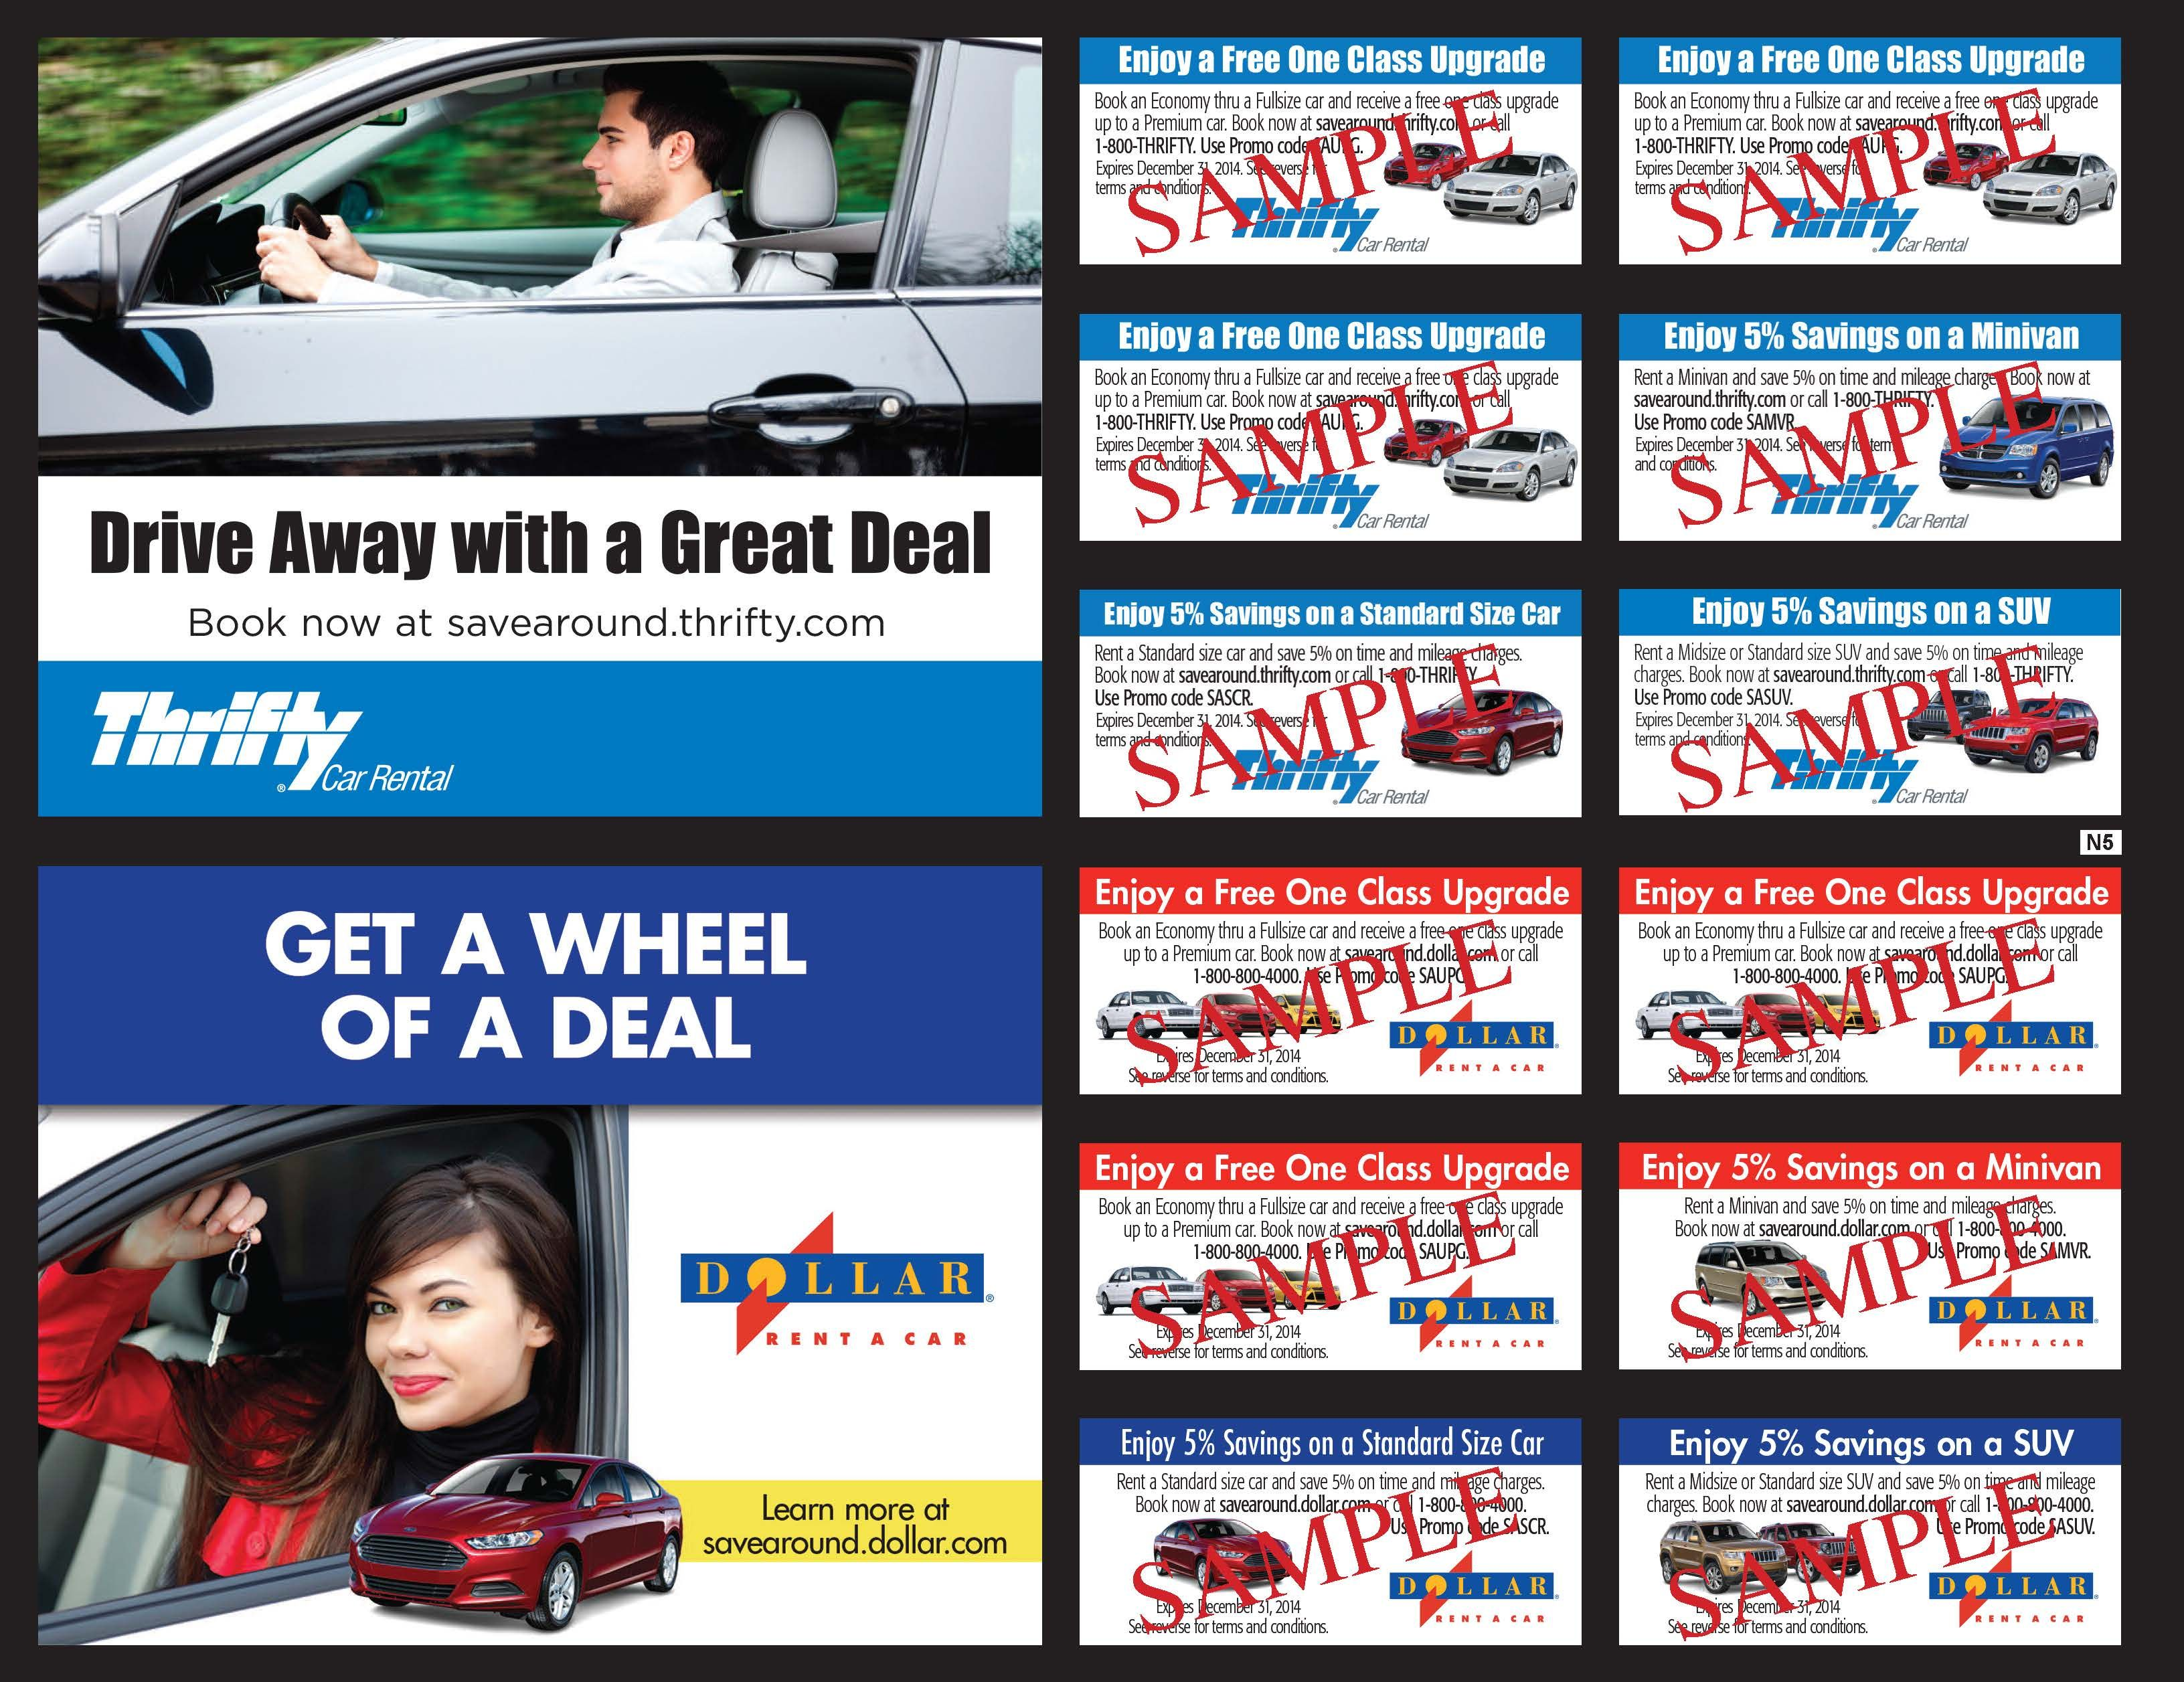 Thrifty Car Rental And Dollar Rent A Car Are Featured In All U S Editions Of 2014 Savearound Coupon Books Thrifty Car Rental Coupon Book Car Rental